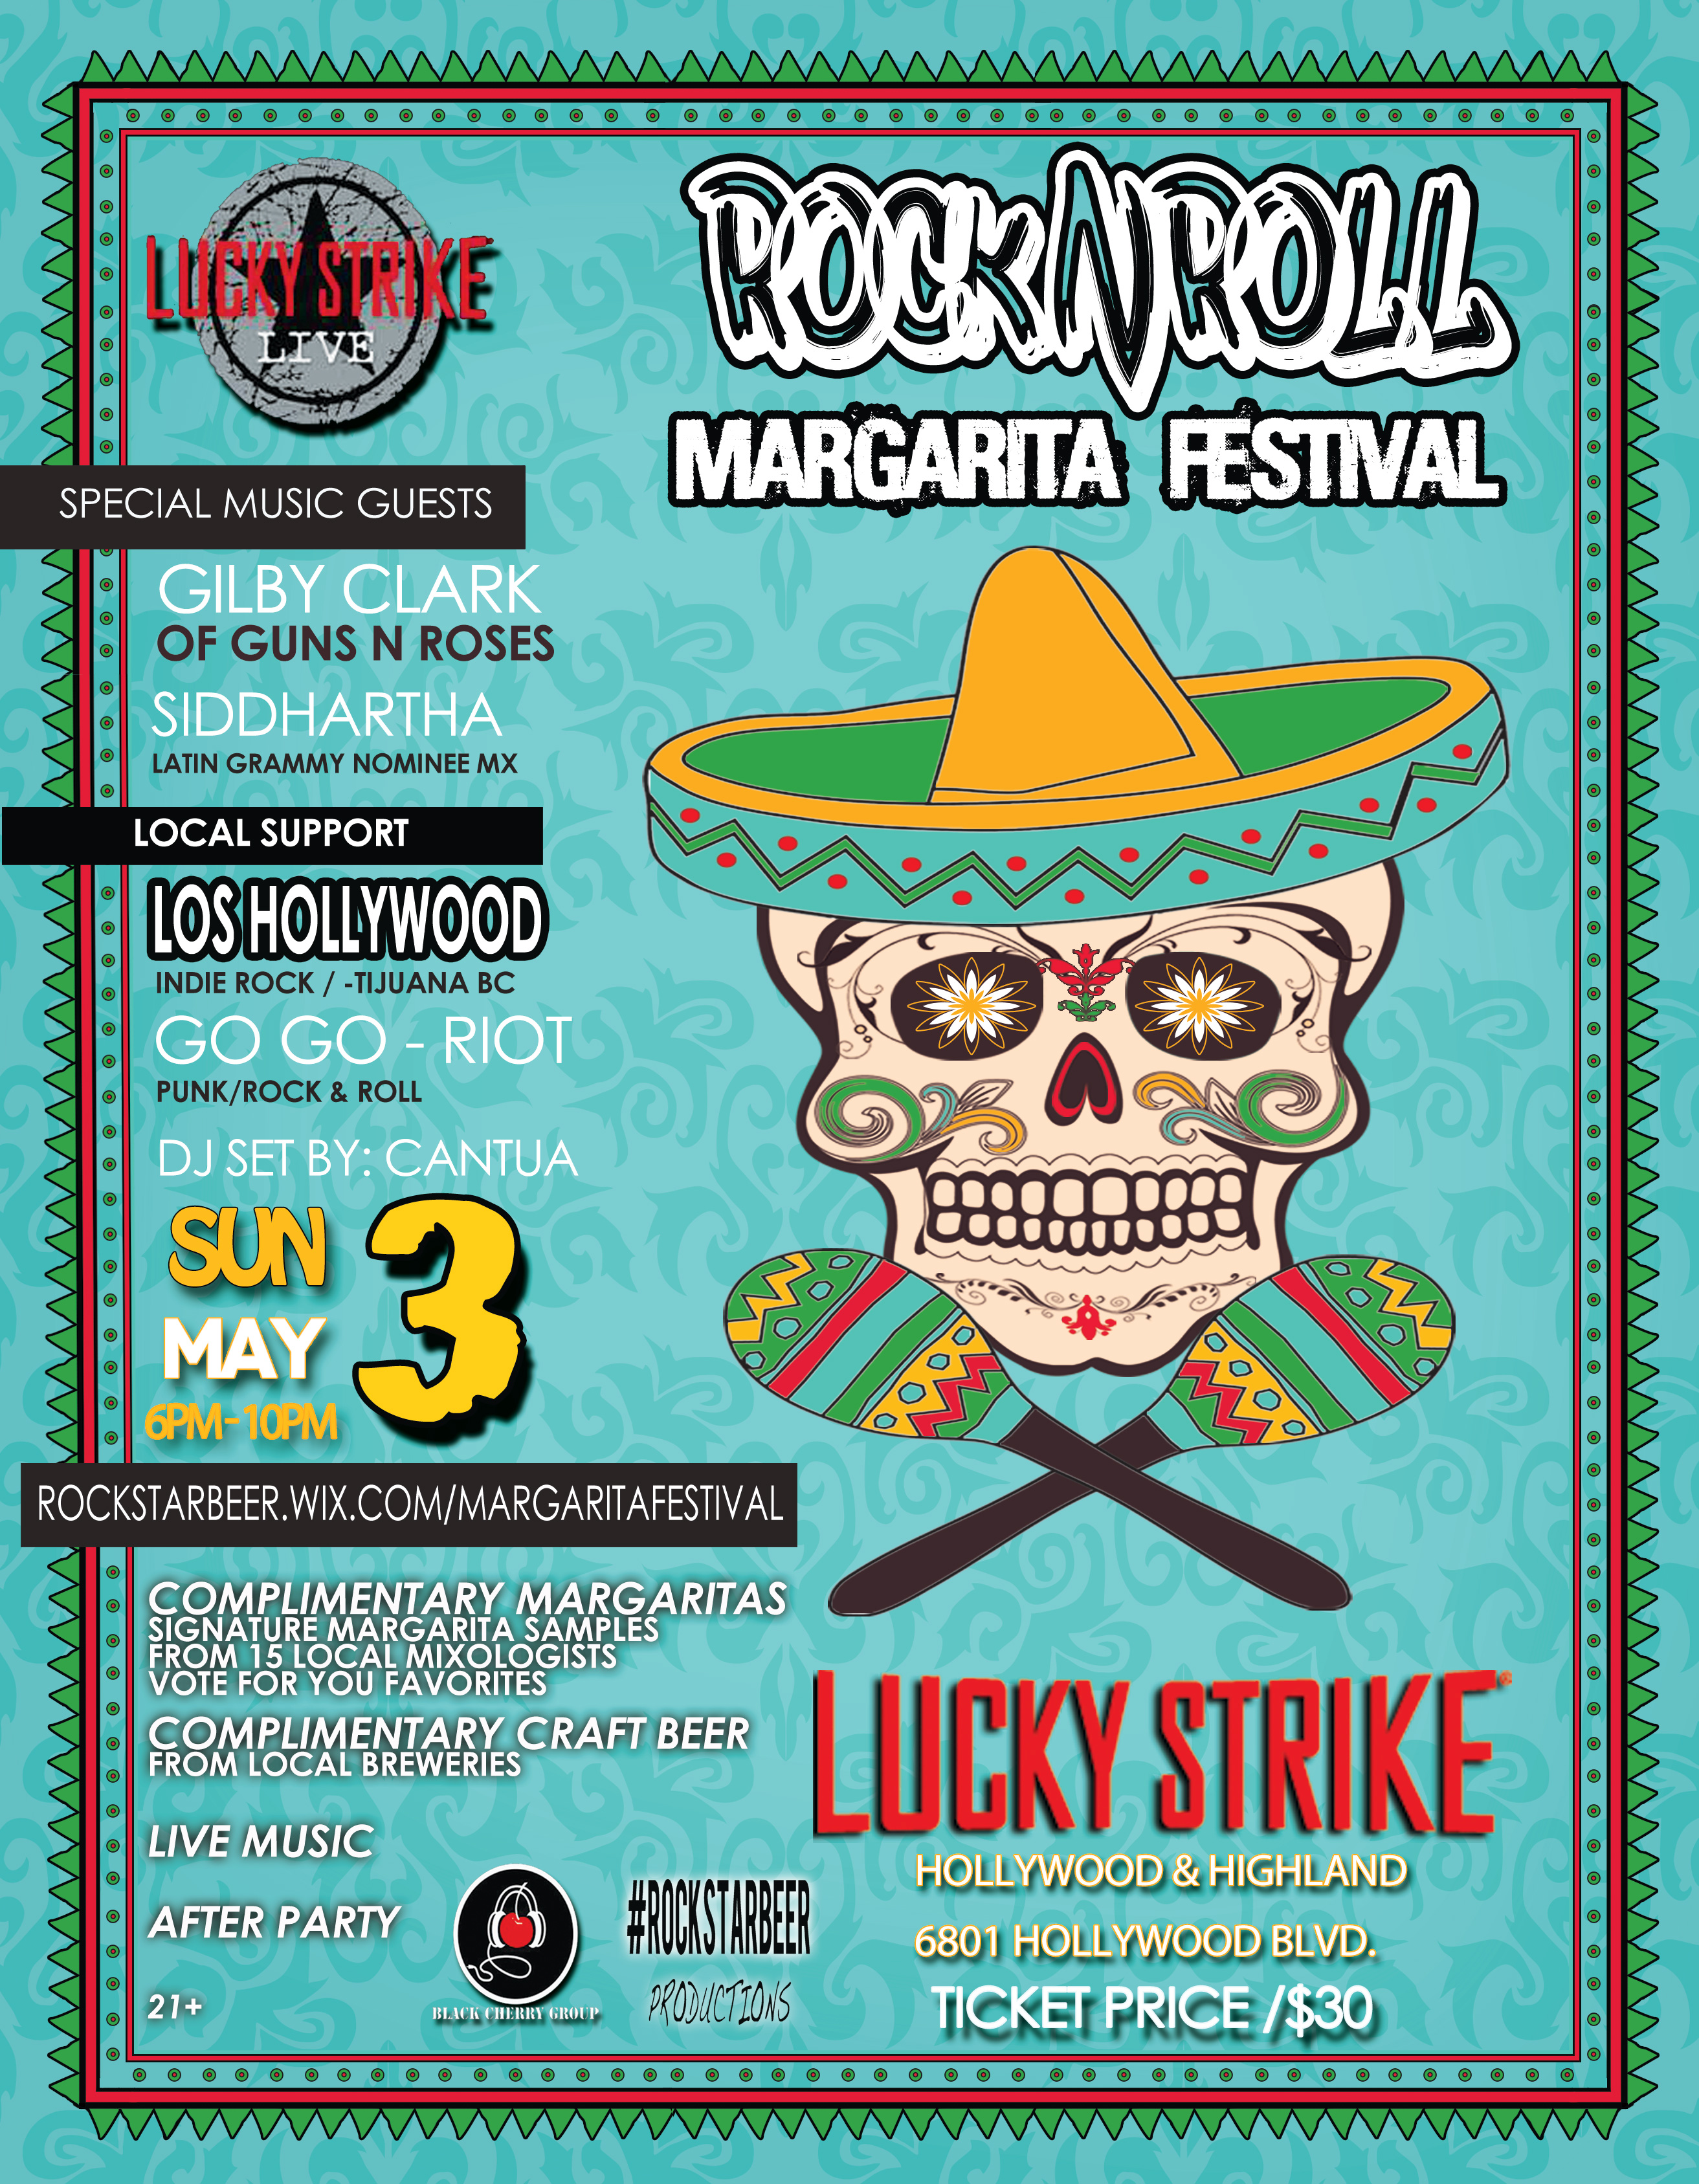 Margarita Festival in Hollywood w/ Siddartha Los Hollywood Giveaway tickets by Gypset Magazine